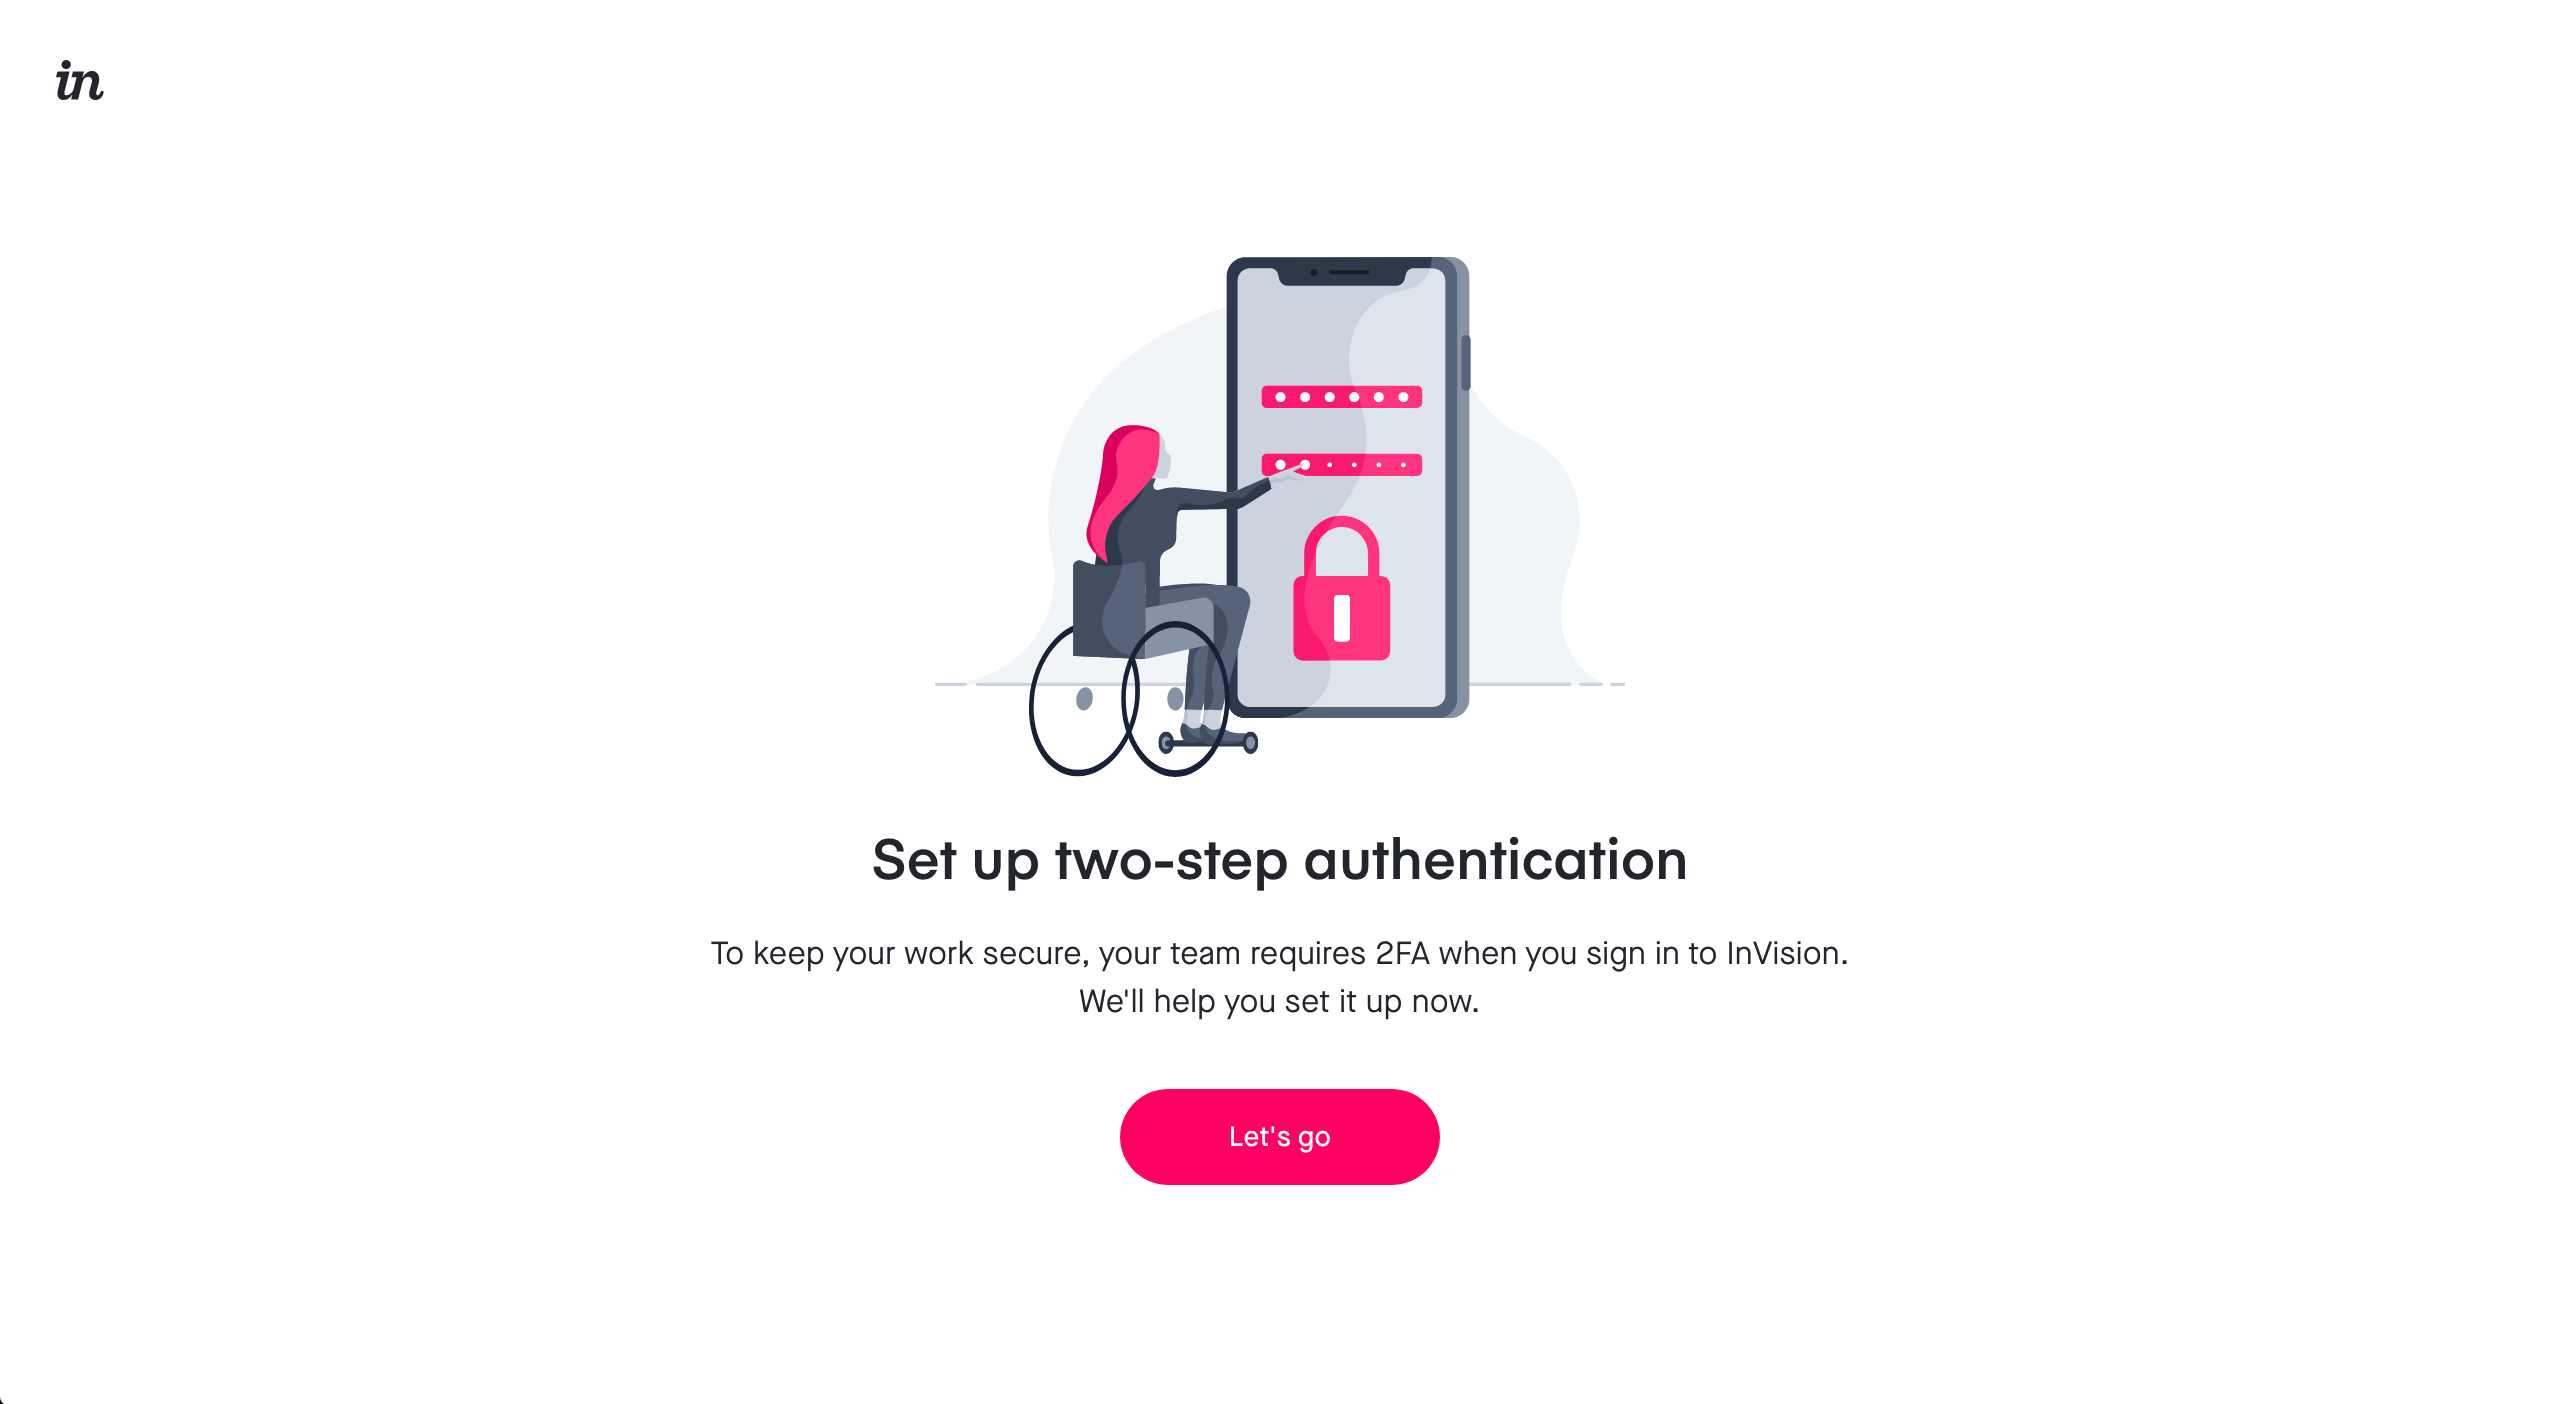 invision-cloud-v7-enterprise-2fa-required-notification.png